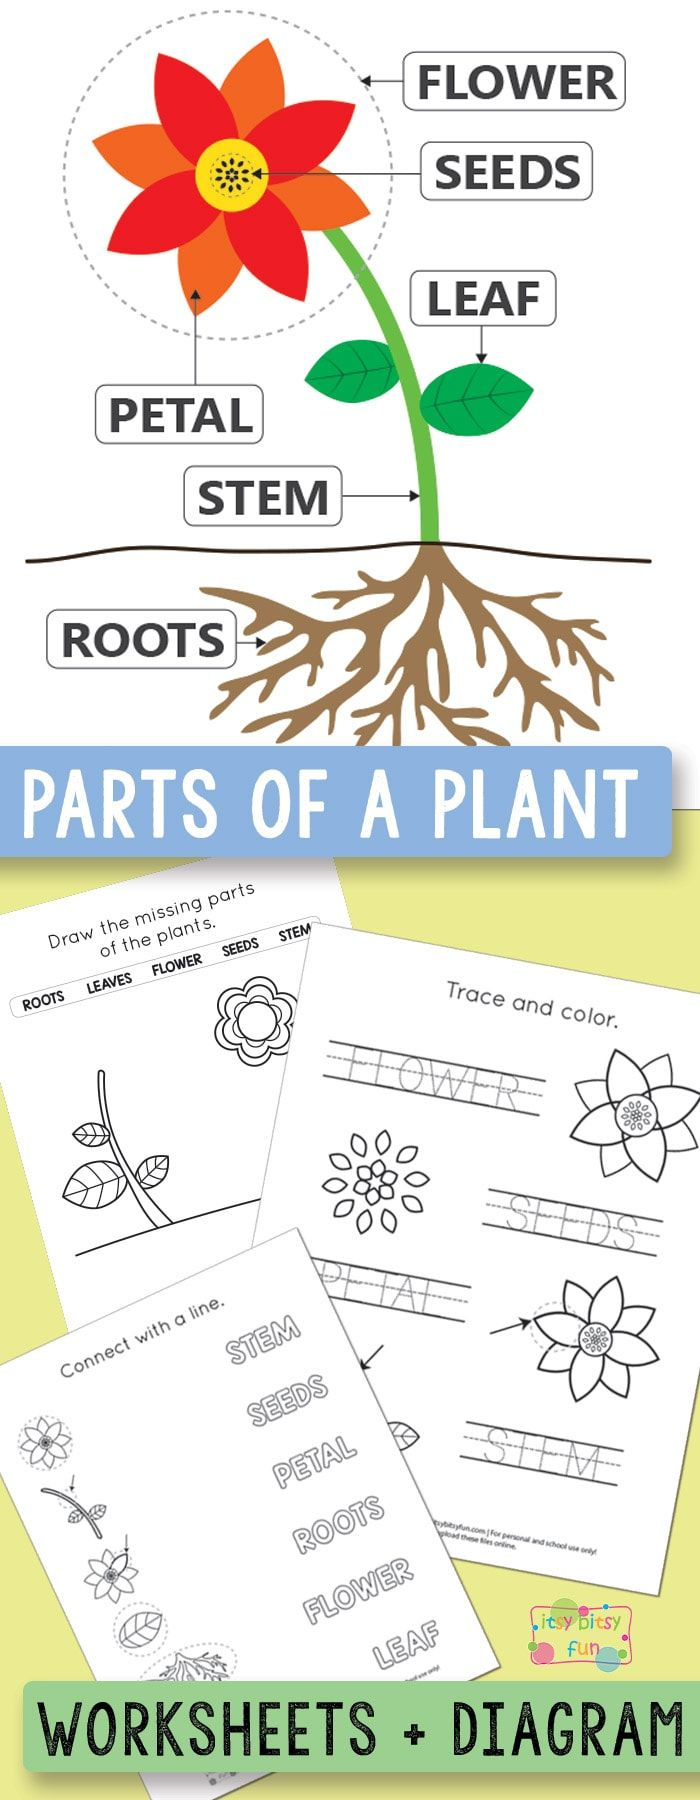 Parts of a Plant Worksheets Kindergarten and 1st Grade #kindergartenworksheets #1stgradeworksheets #freeprintables